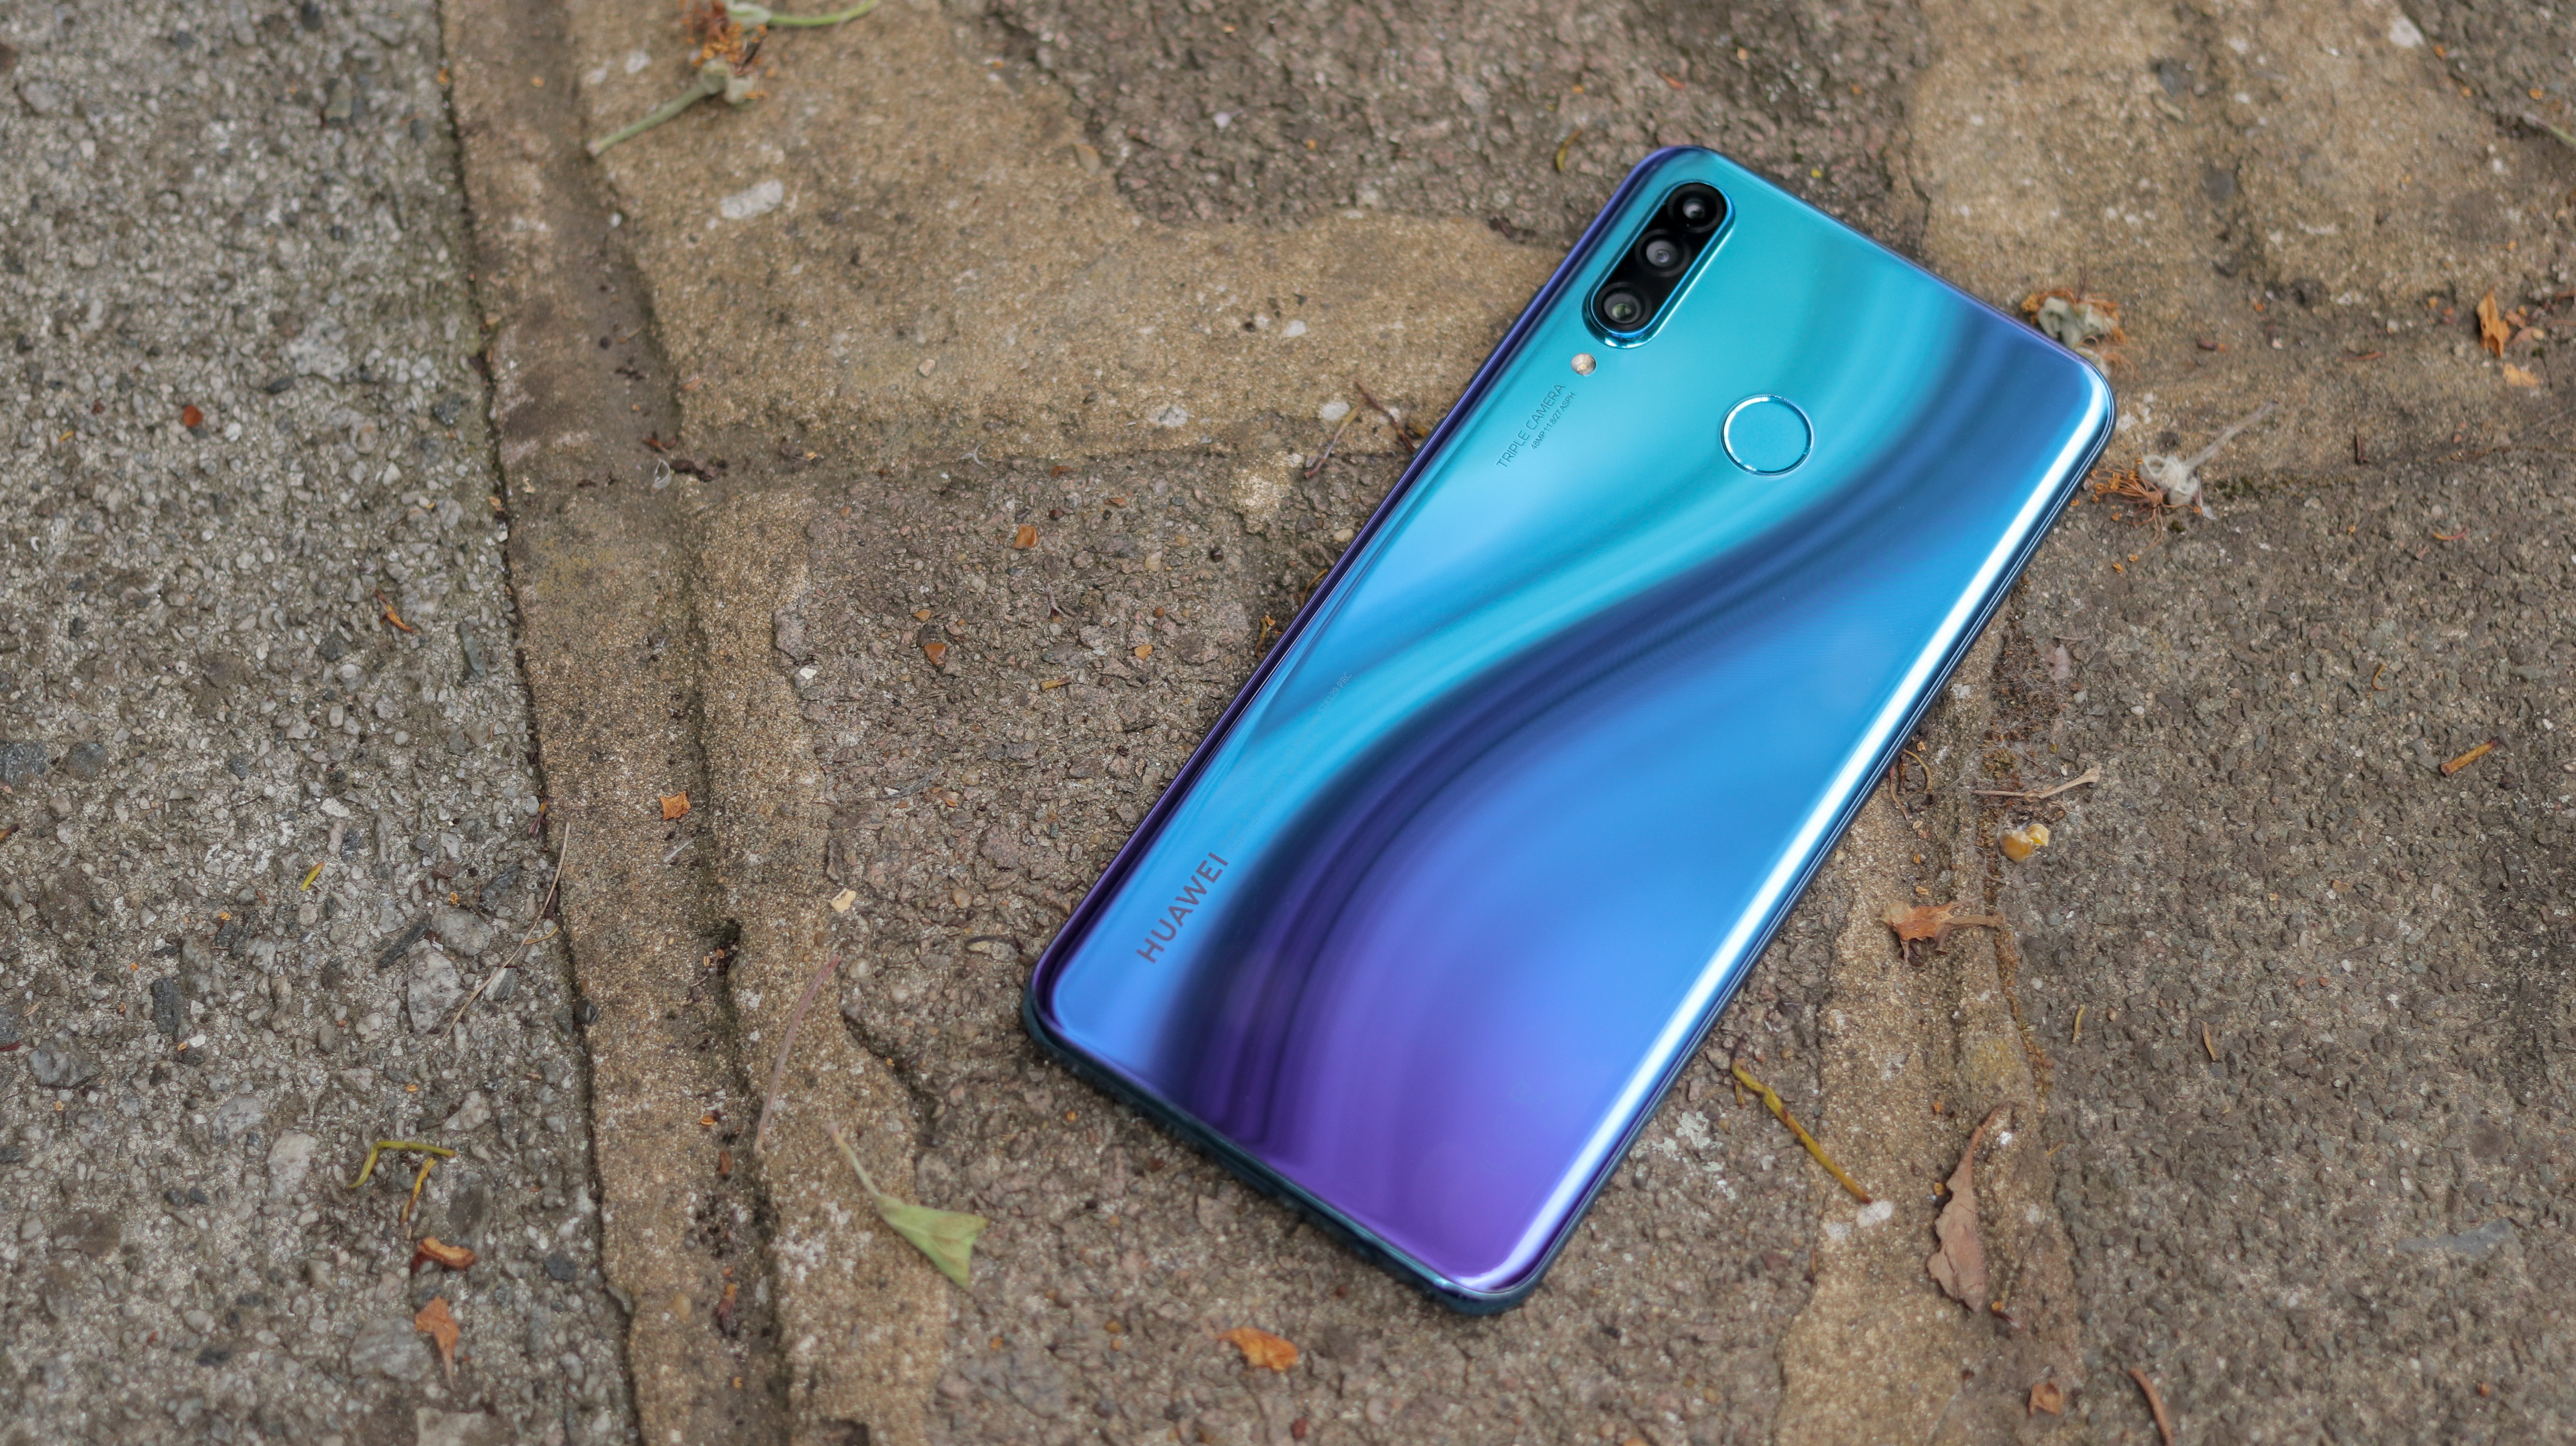 A new, revamped version of the Huawei P30 Lite is on sale now